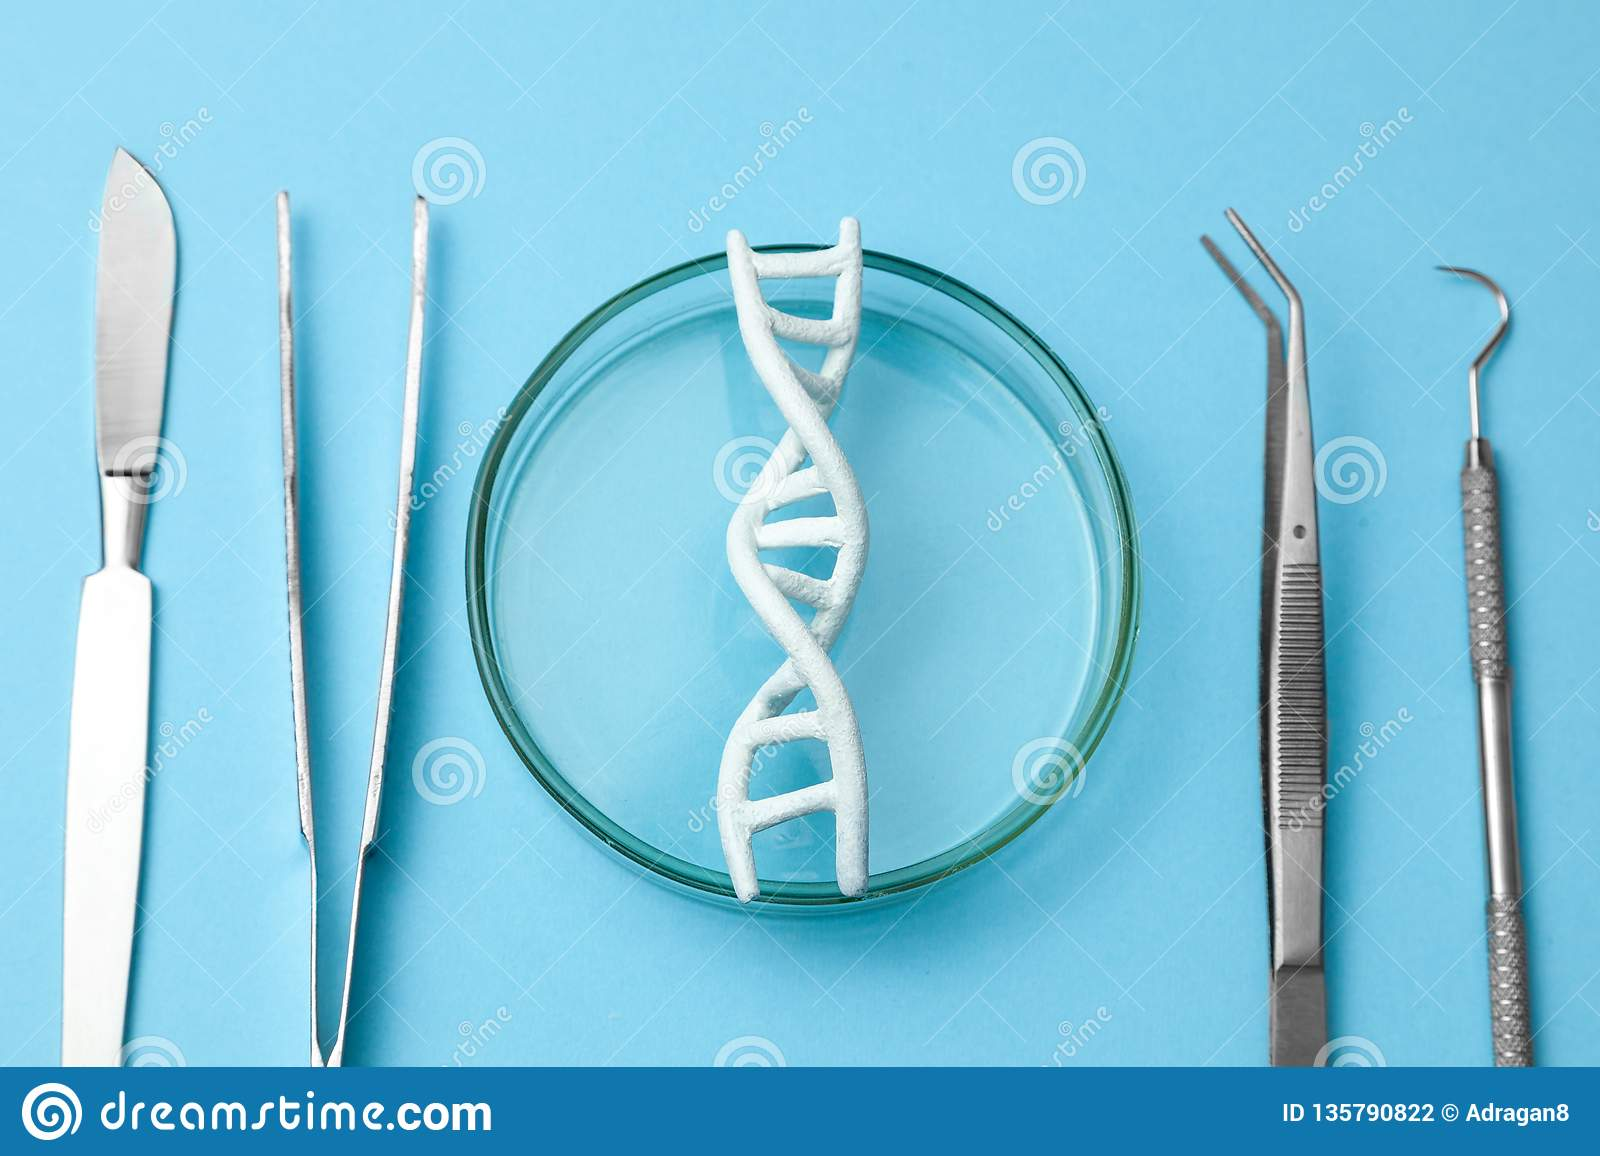 DNA helix research. Concept of genetic experiments on human biological code DNA. Medical instrument scalpel and forceps.